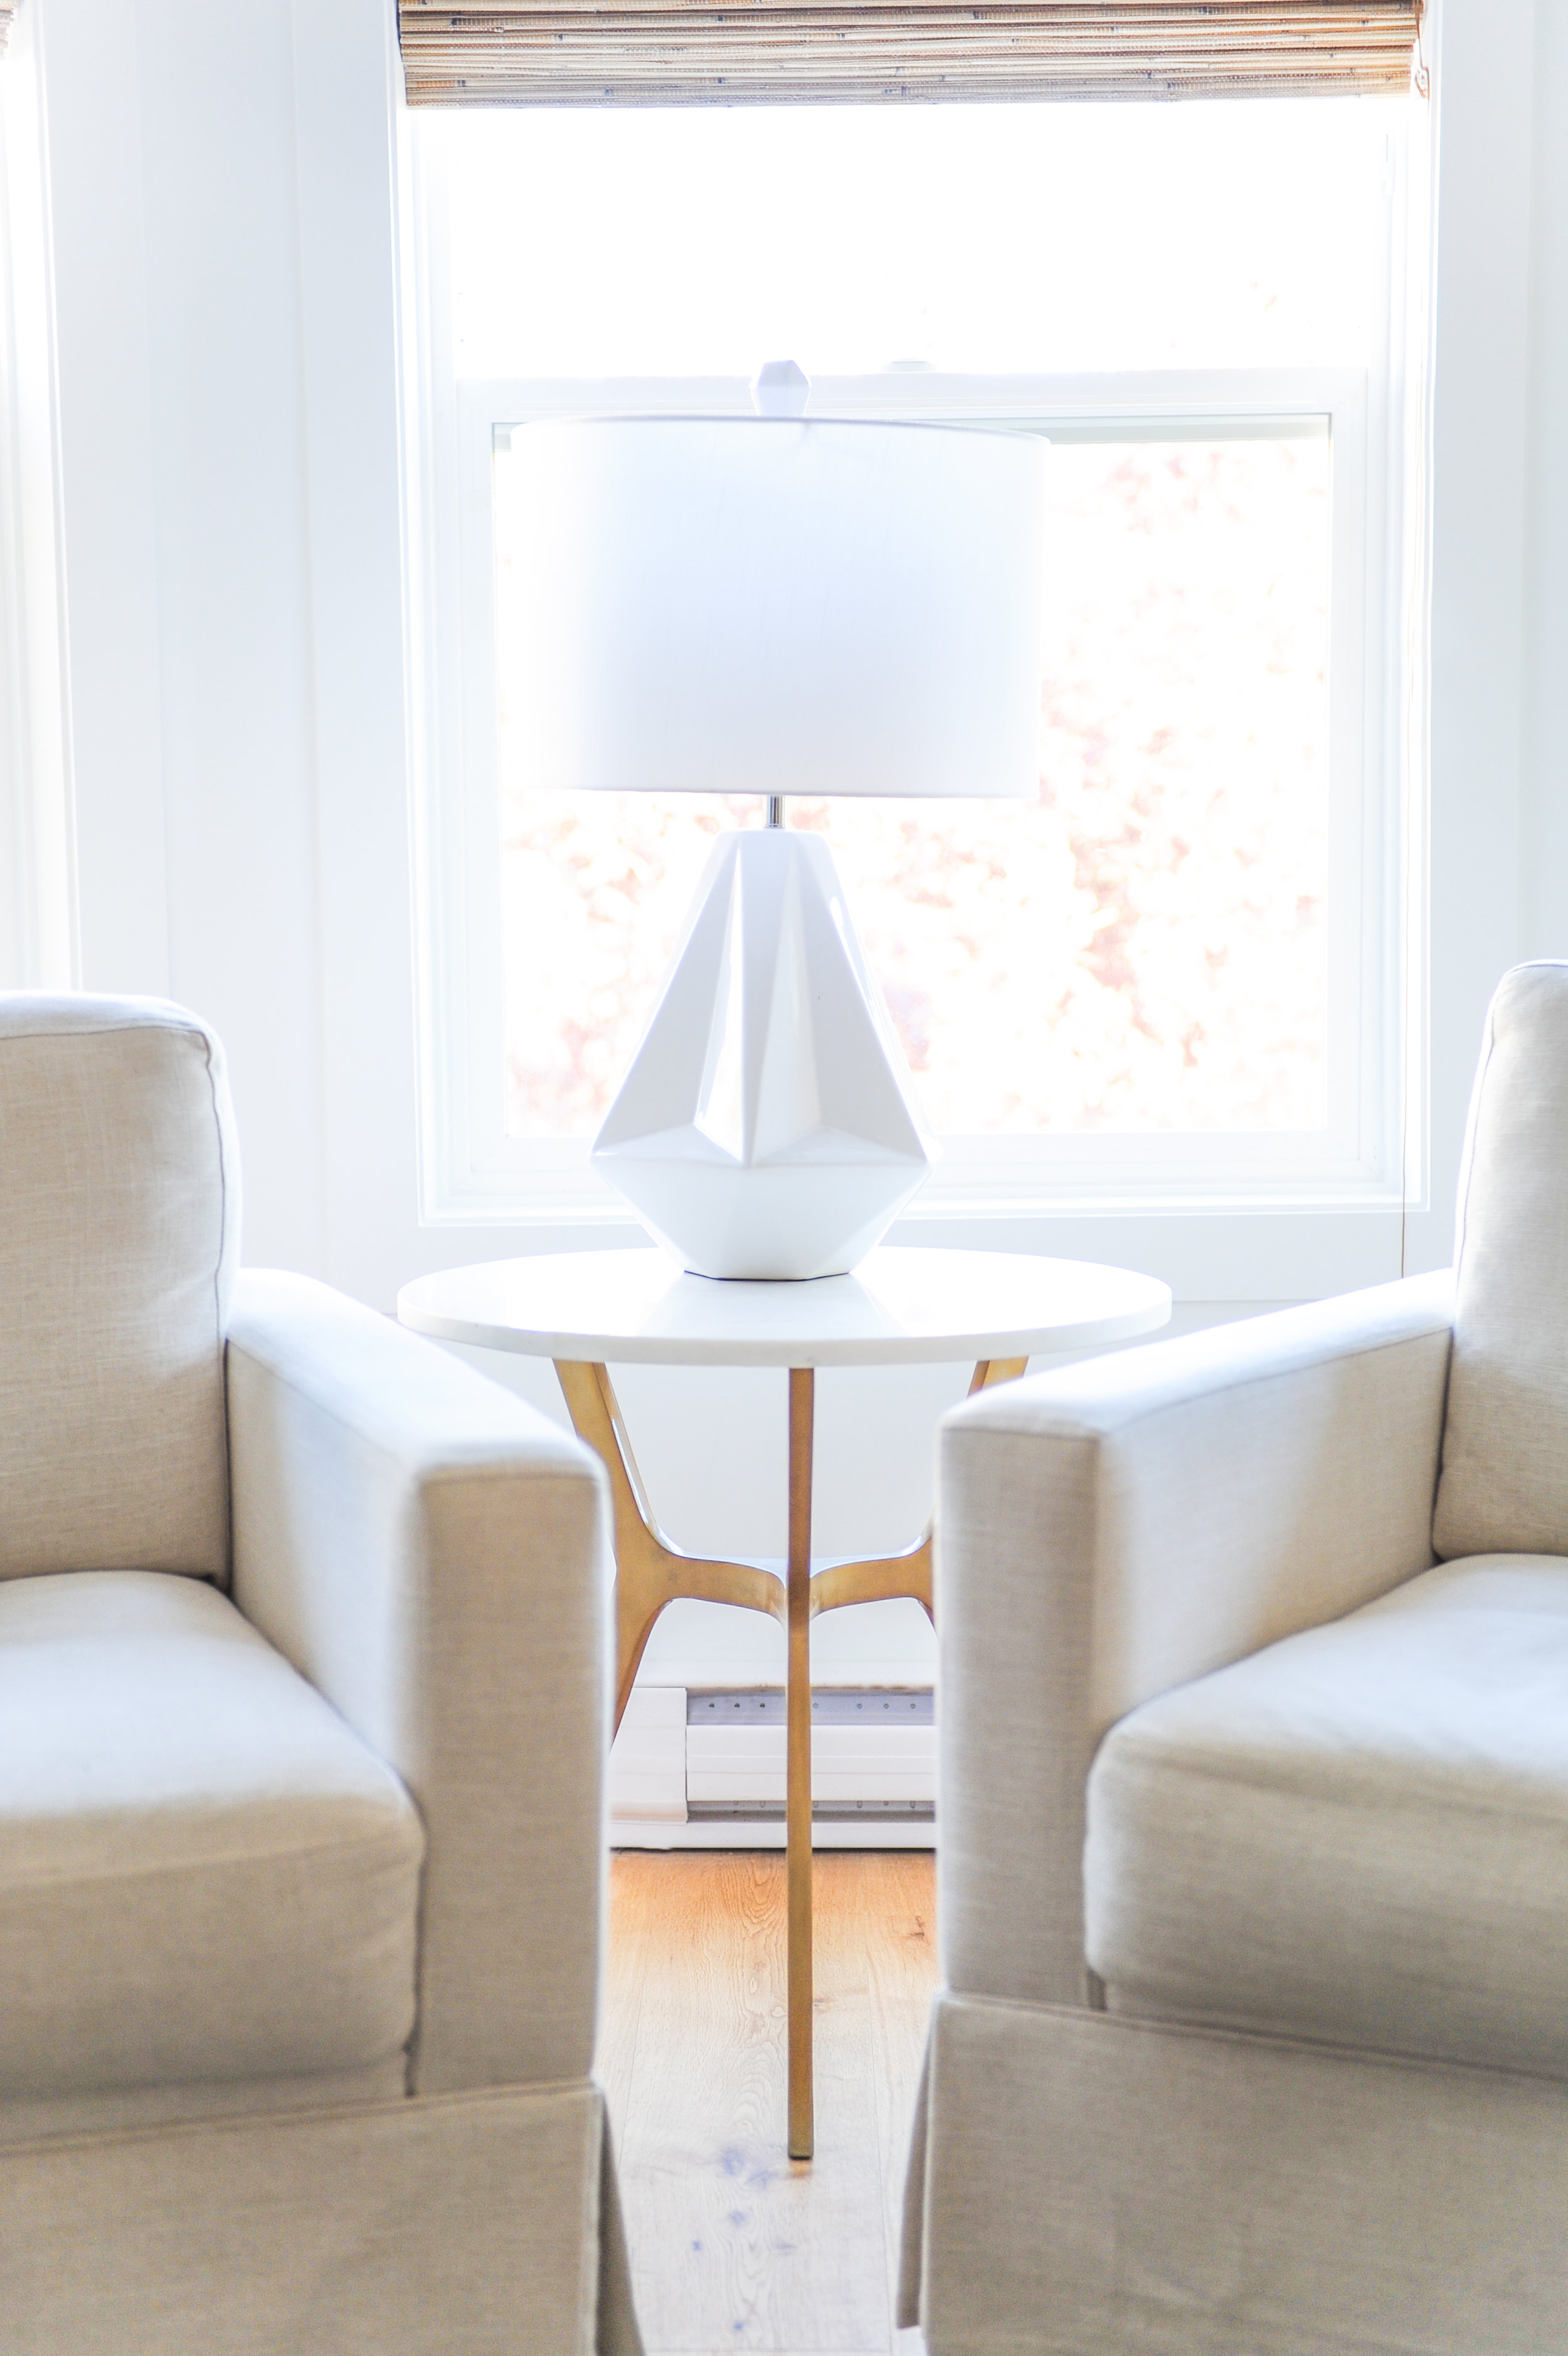 A white geometric lamp on a wooden end table with white table top between two cream coloured armchairs.